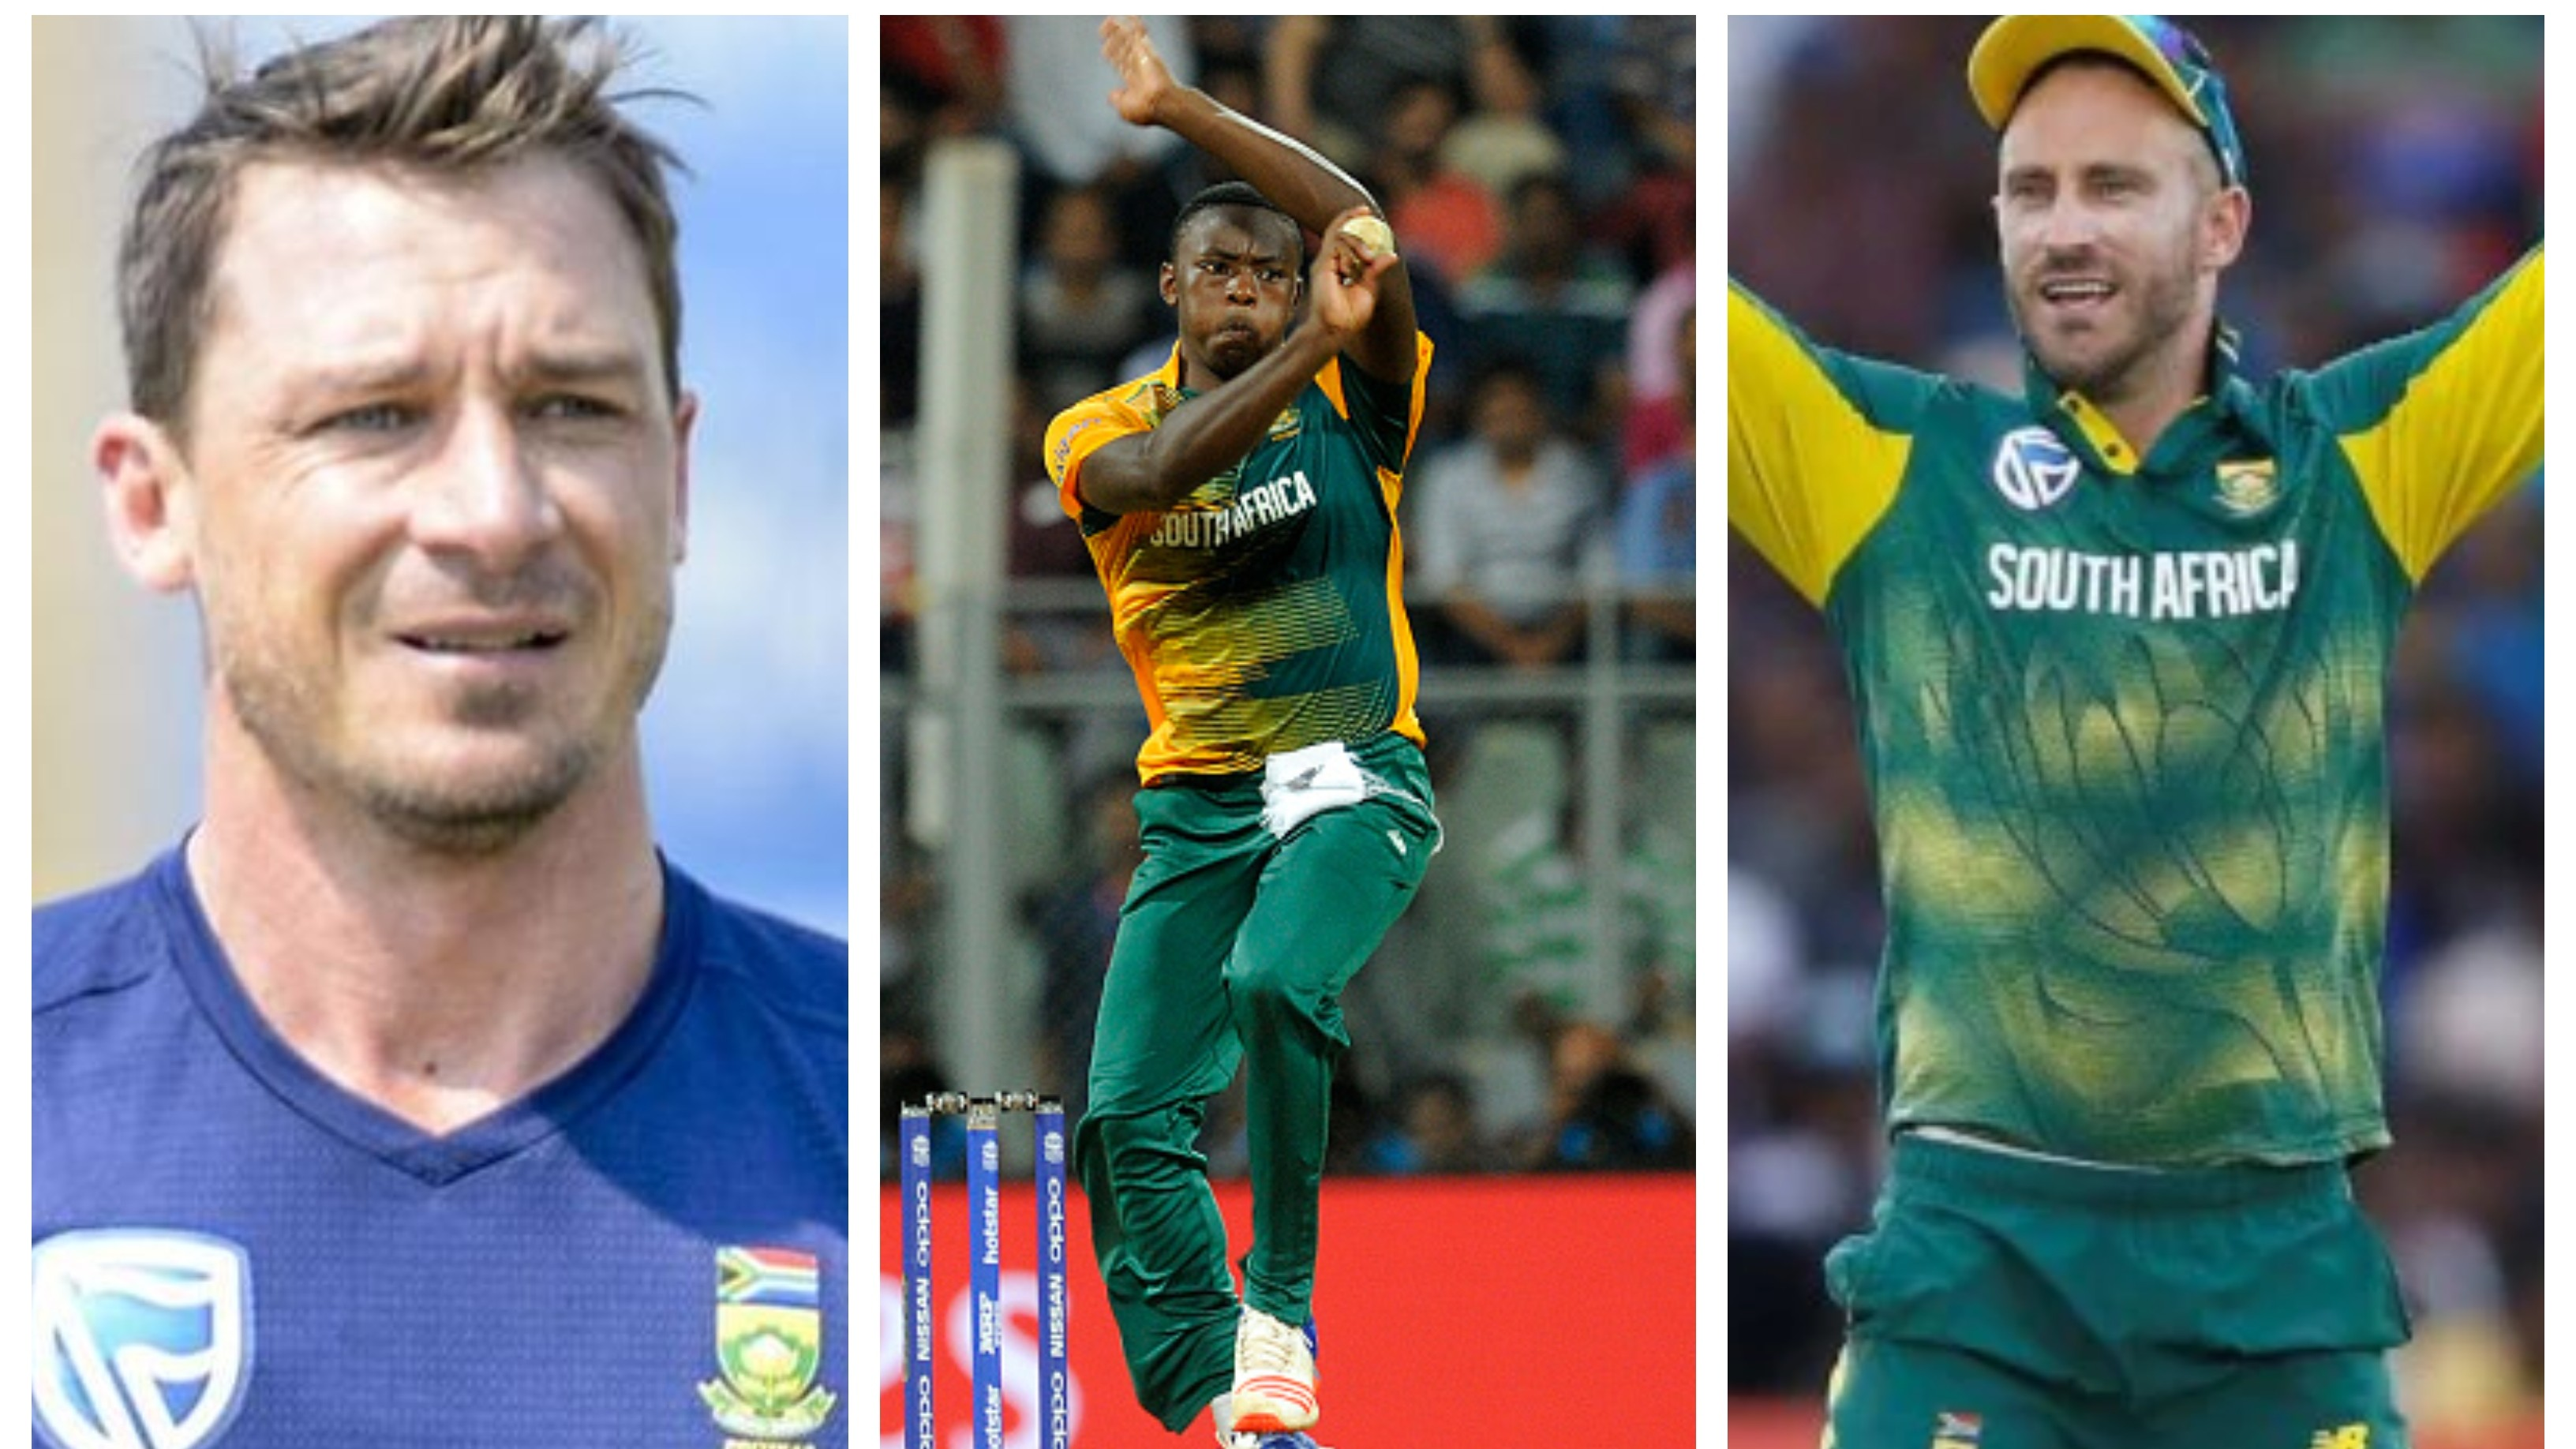 IND v SA 2019: Cricket fraternity reacts as South Africa restrict India to a paltry 134/9 in the third T20I